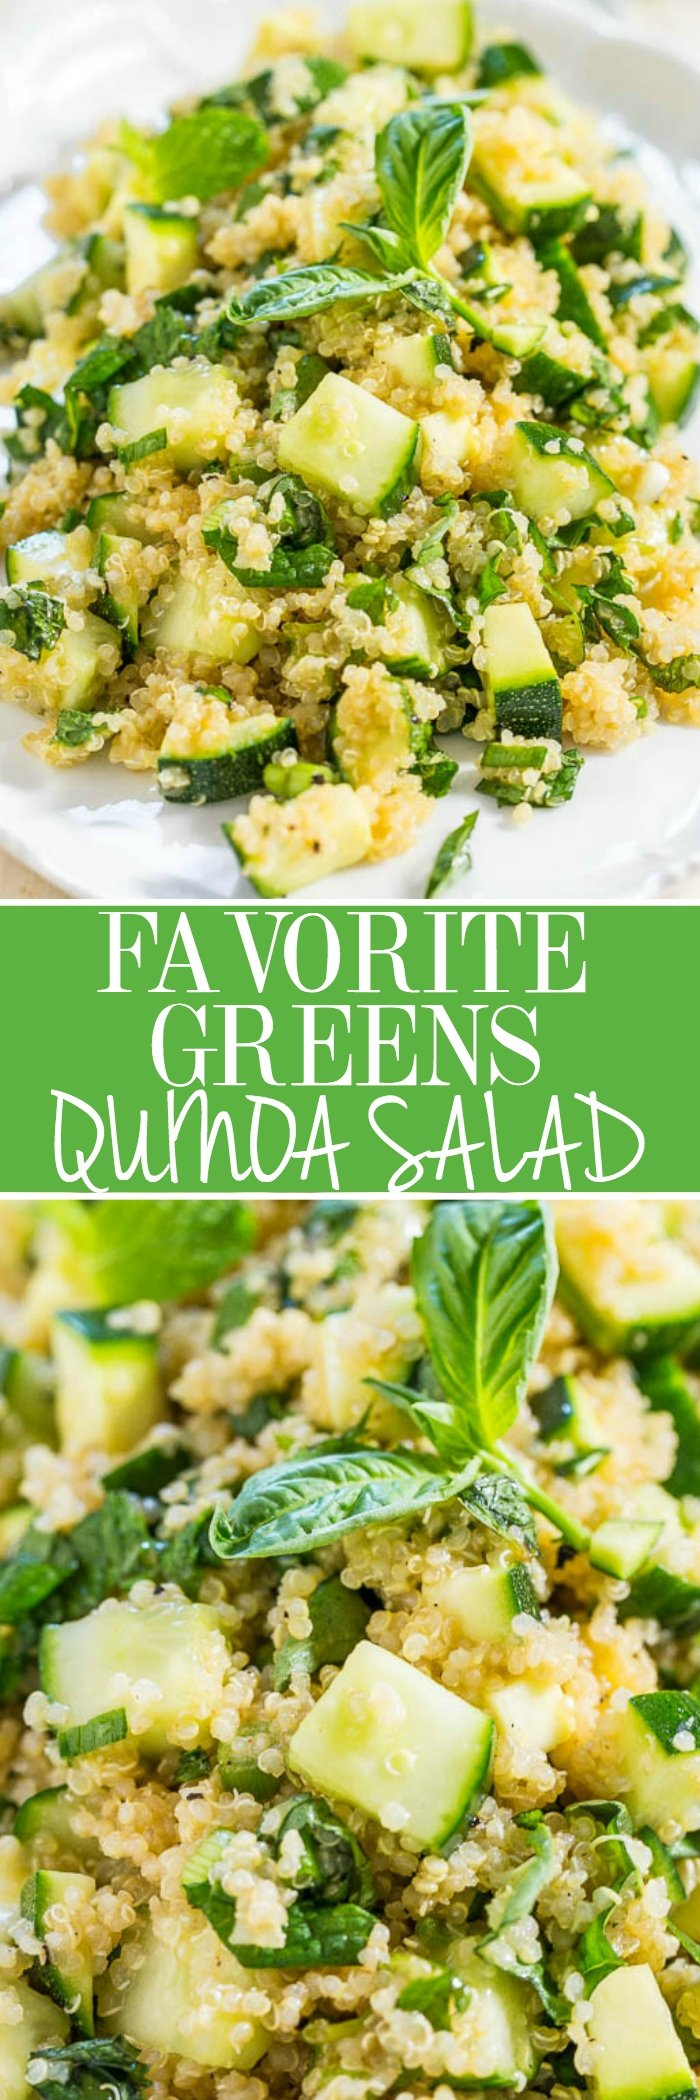 Favorite Greens Quinoa Salad - Cucumber, zucchini, basil, and mint tossed with a sweet-and-tangy honey-lemon vinaigrette! Healthy, easy, ready in 15 minutes, and the best way to eat your greens!!